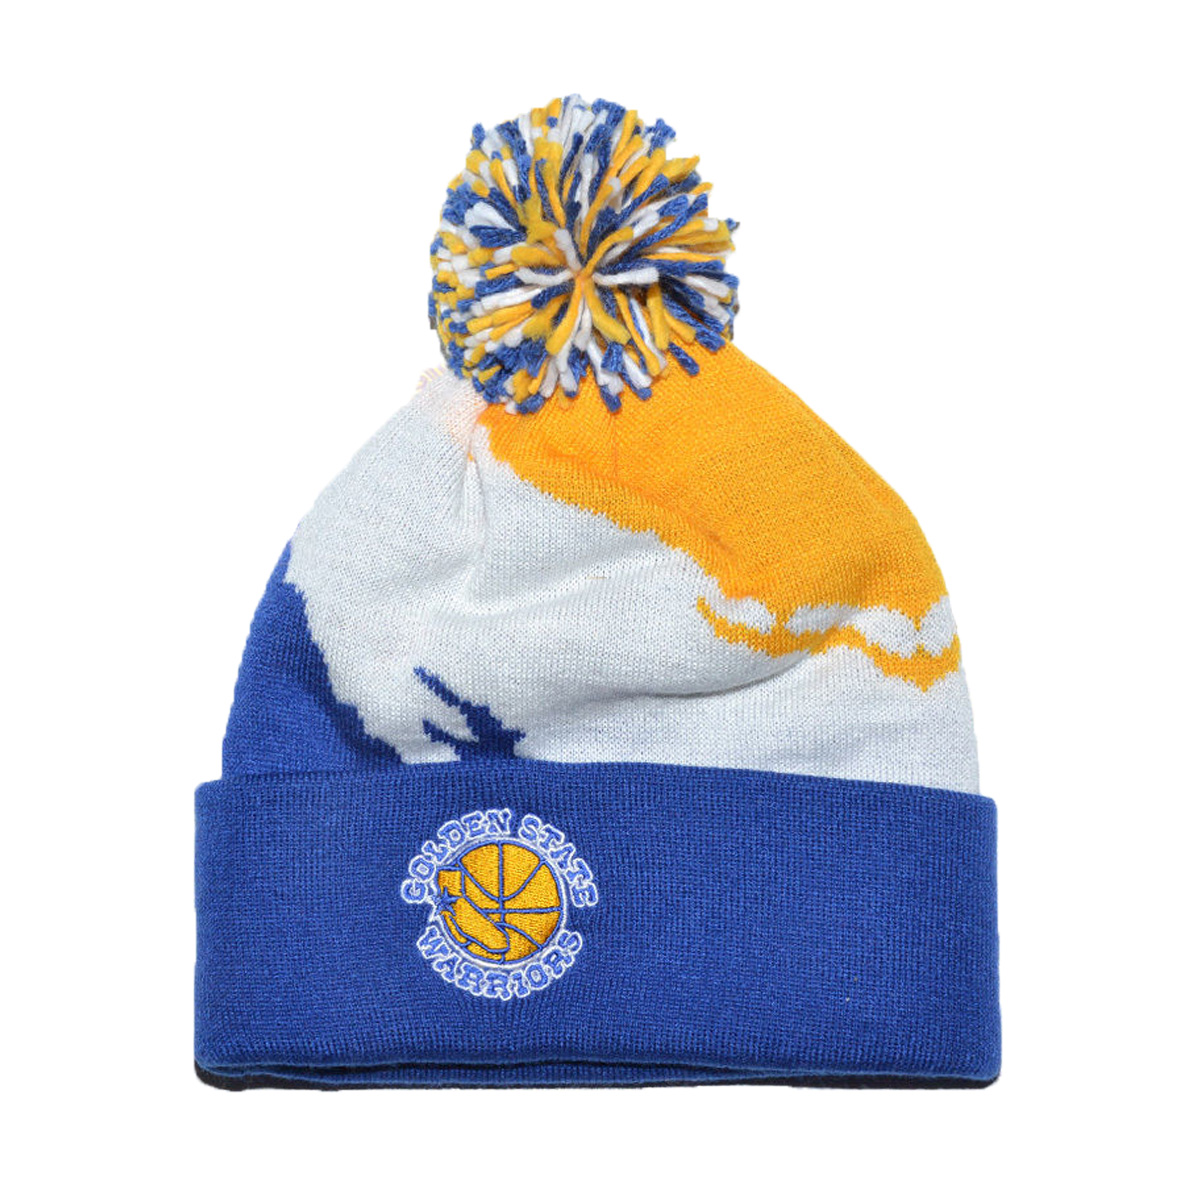 6f3e7d61 Golden State Warriors Gsw Mitchell & Ness Nba Pom Pom Beanie - MyCraze